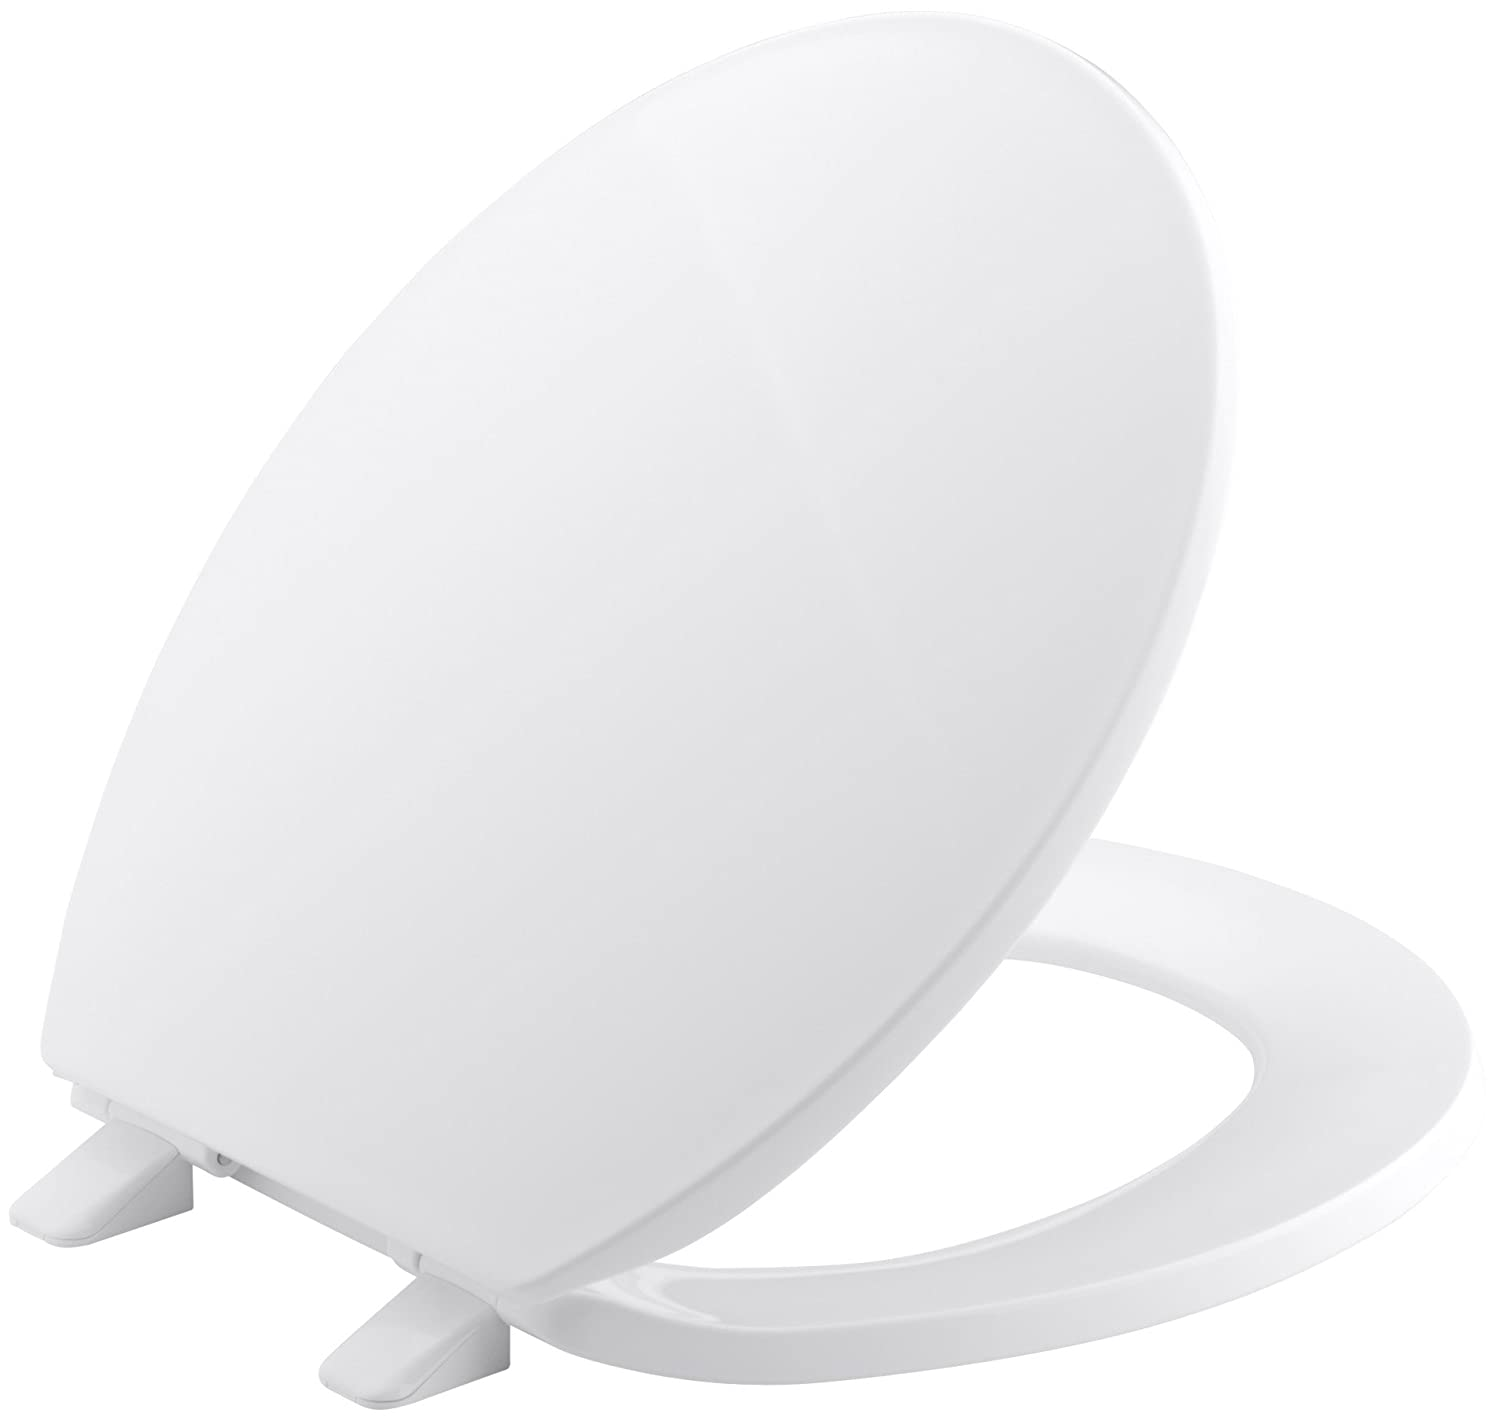 Groovy Kohler K 4775 0 Brevia With Quick Release Hinges Round Front Toilet Seat In White Caraccident5 Cool Chair Designs And Ideas Caraccident5Info